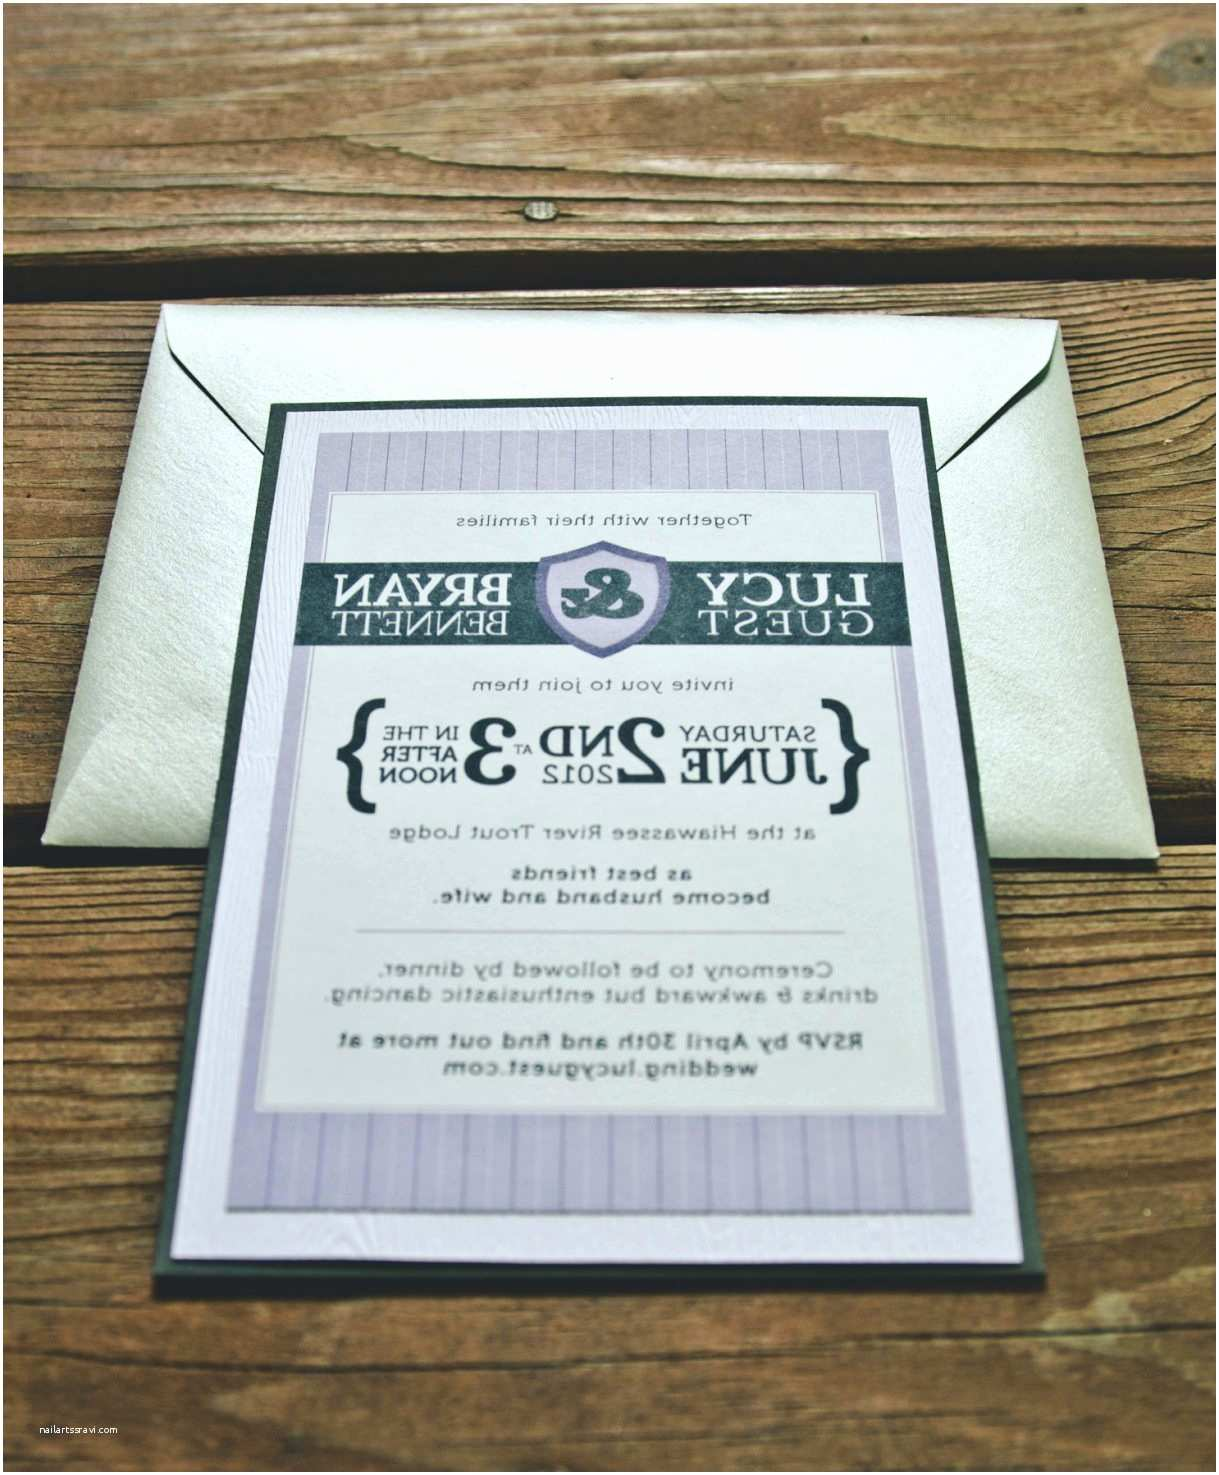 Best Printer for Wedding Invitations Amazing Best Printer for Diy Wedding Invitations Terrific